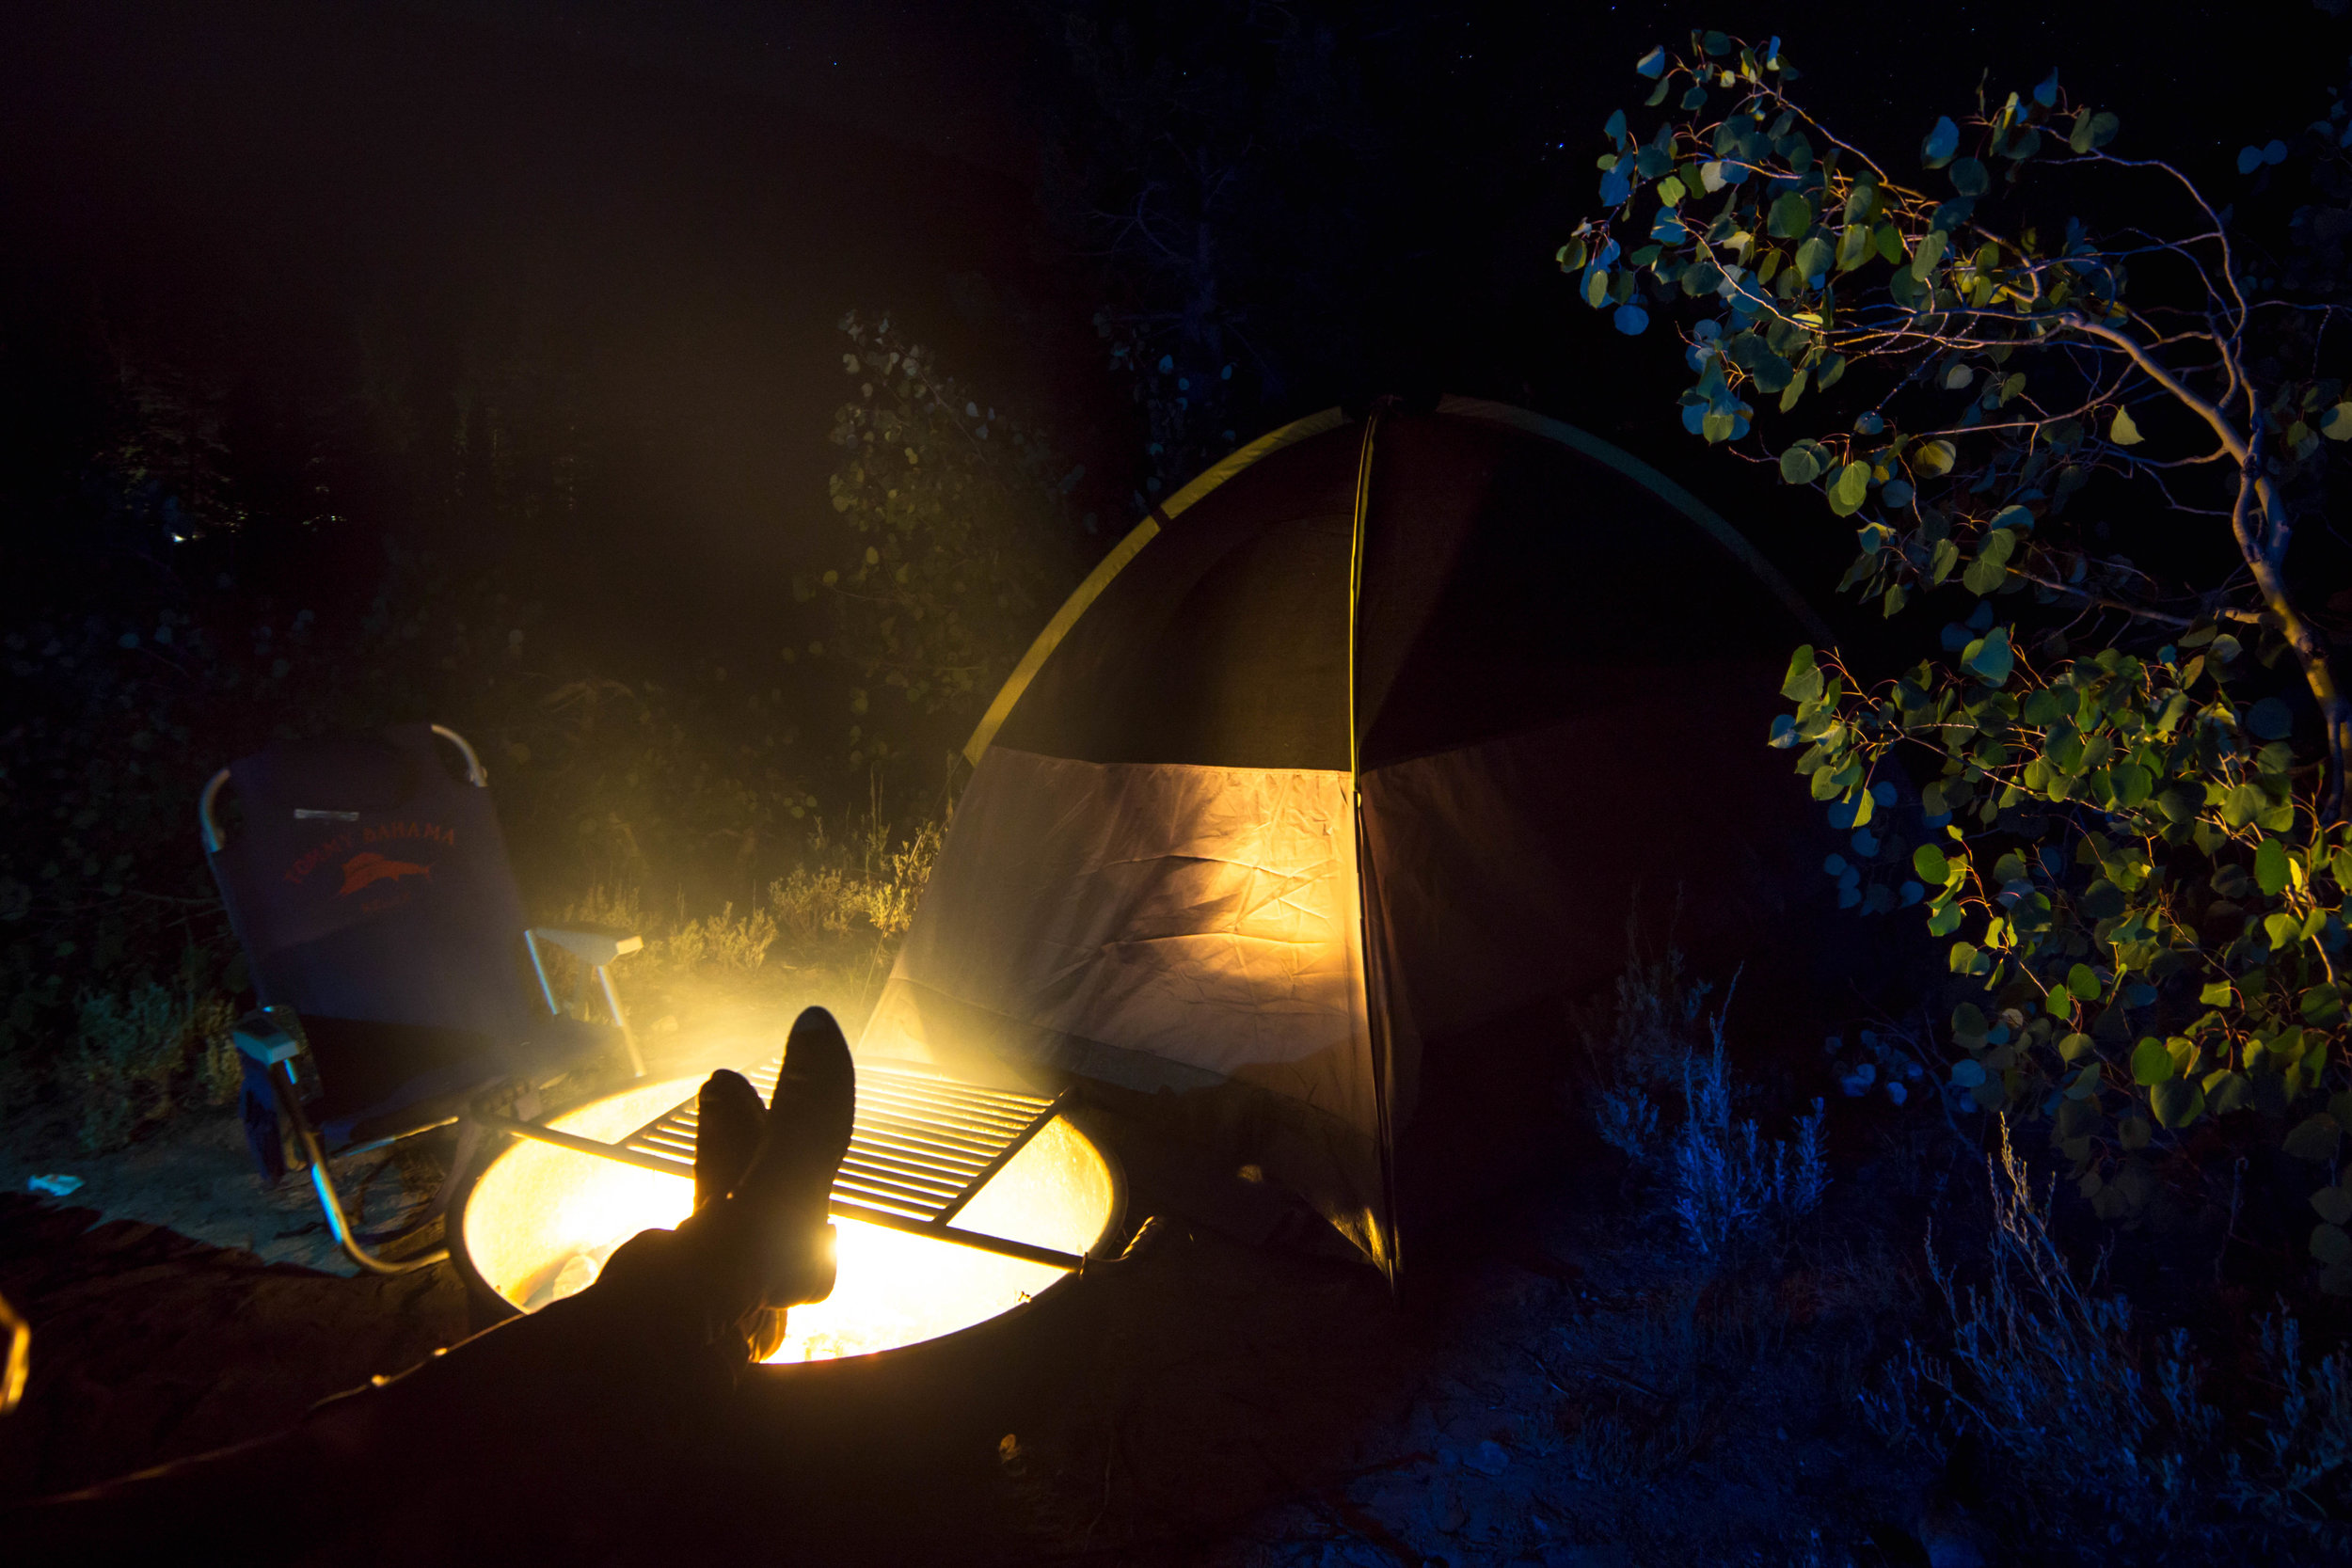 We put our feet up, exchanging stories & listening to the sounds of critters rustling around our camp, cloaked in the shadowy night.